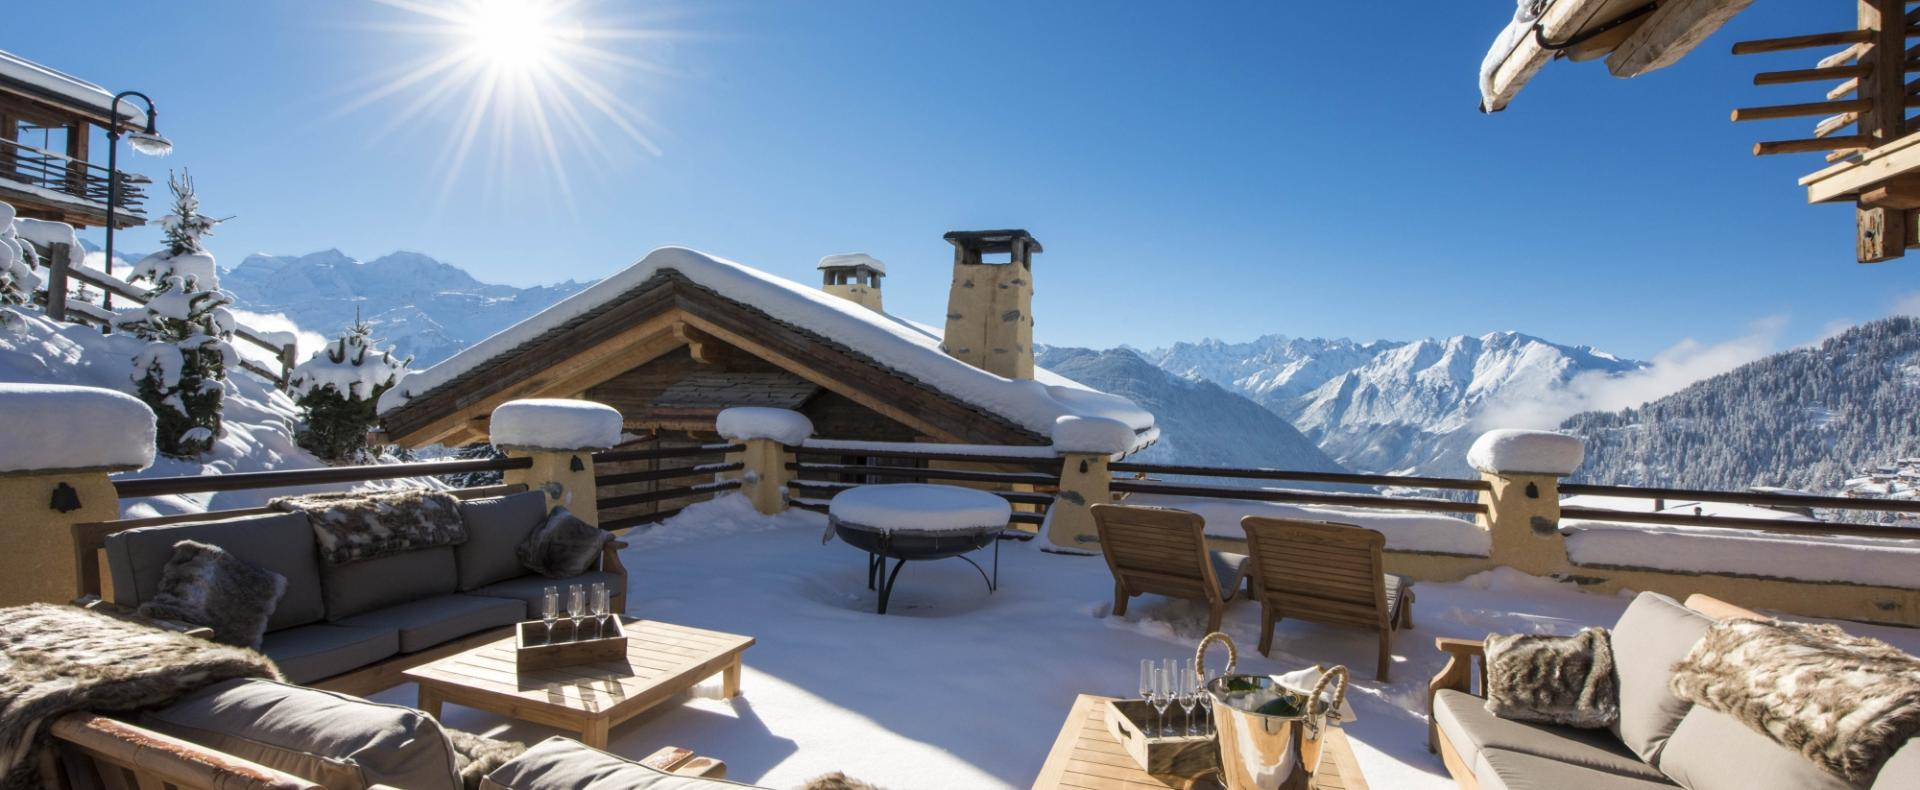 Terrace-Chalet-Chouqui-Verbier-Ultimate-Luxury-Chalets-UltraVilla